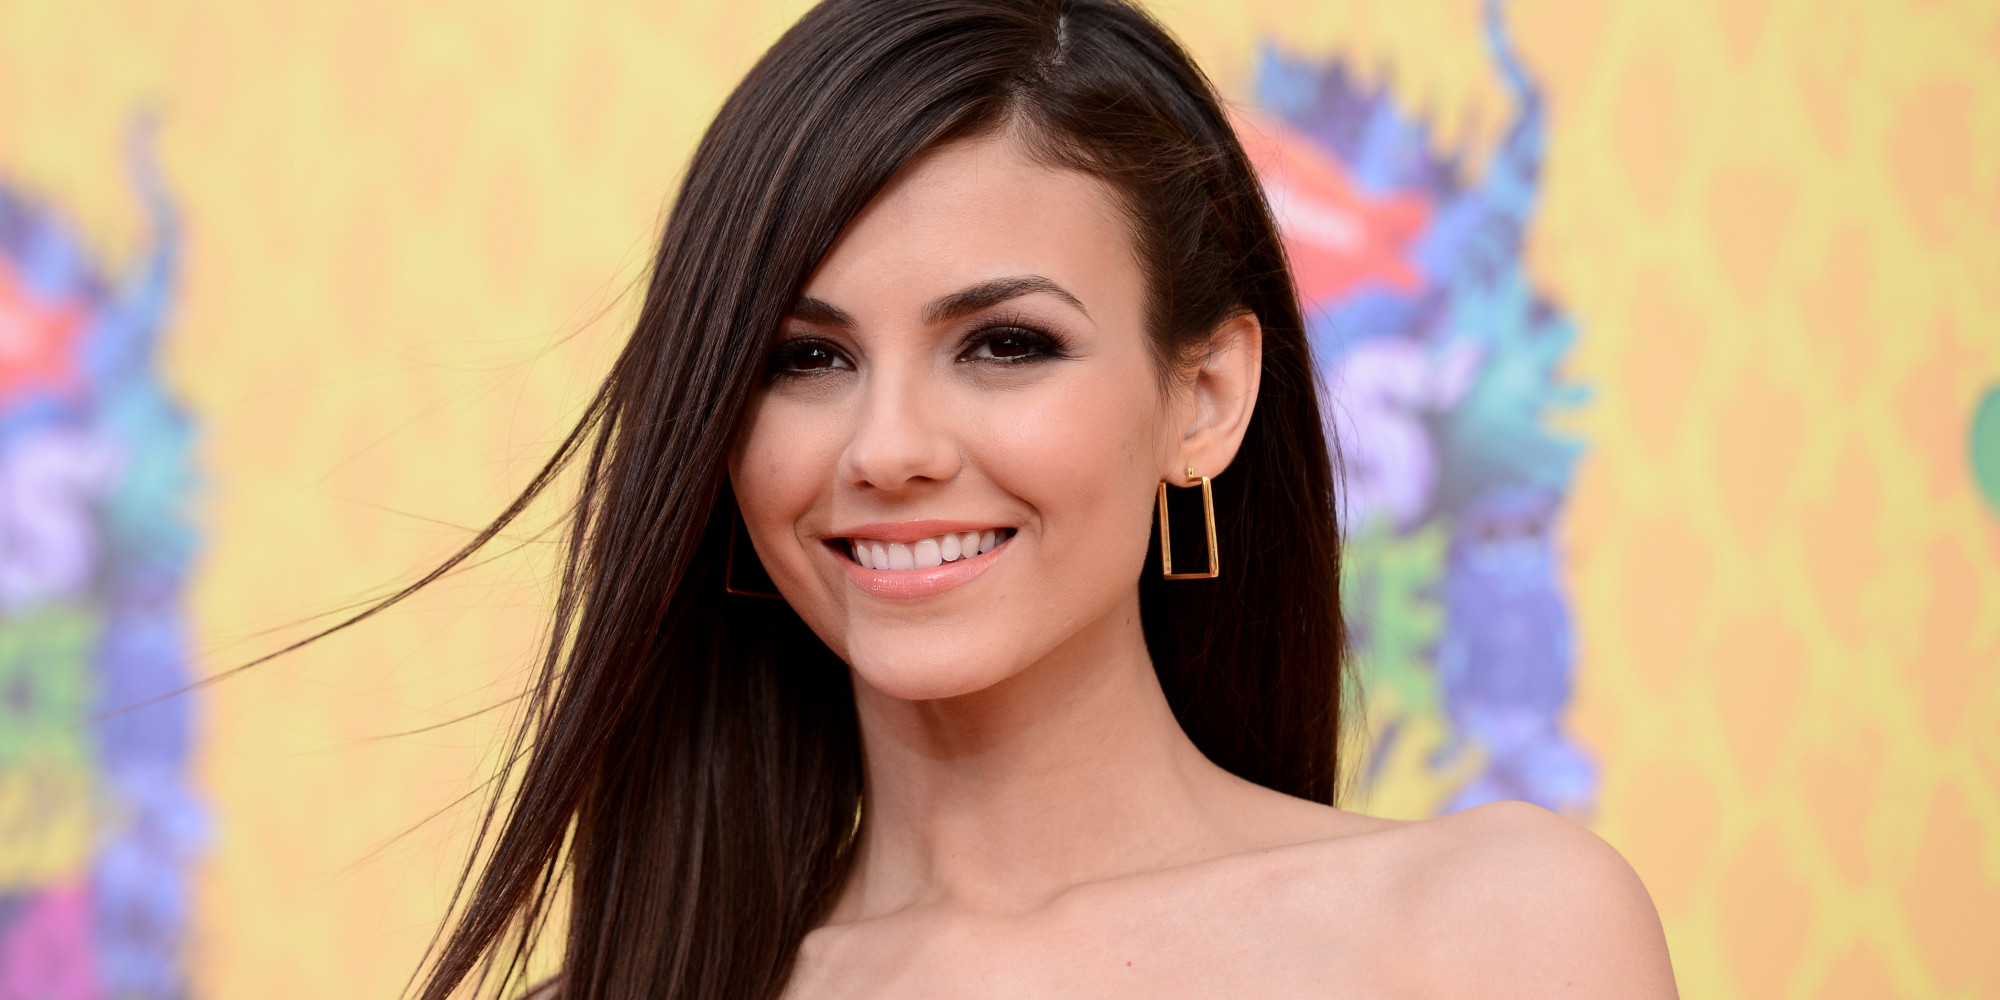 Fake Nude Victoria Justice throughout victoria justice is taking legal action after nude photo hack